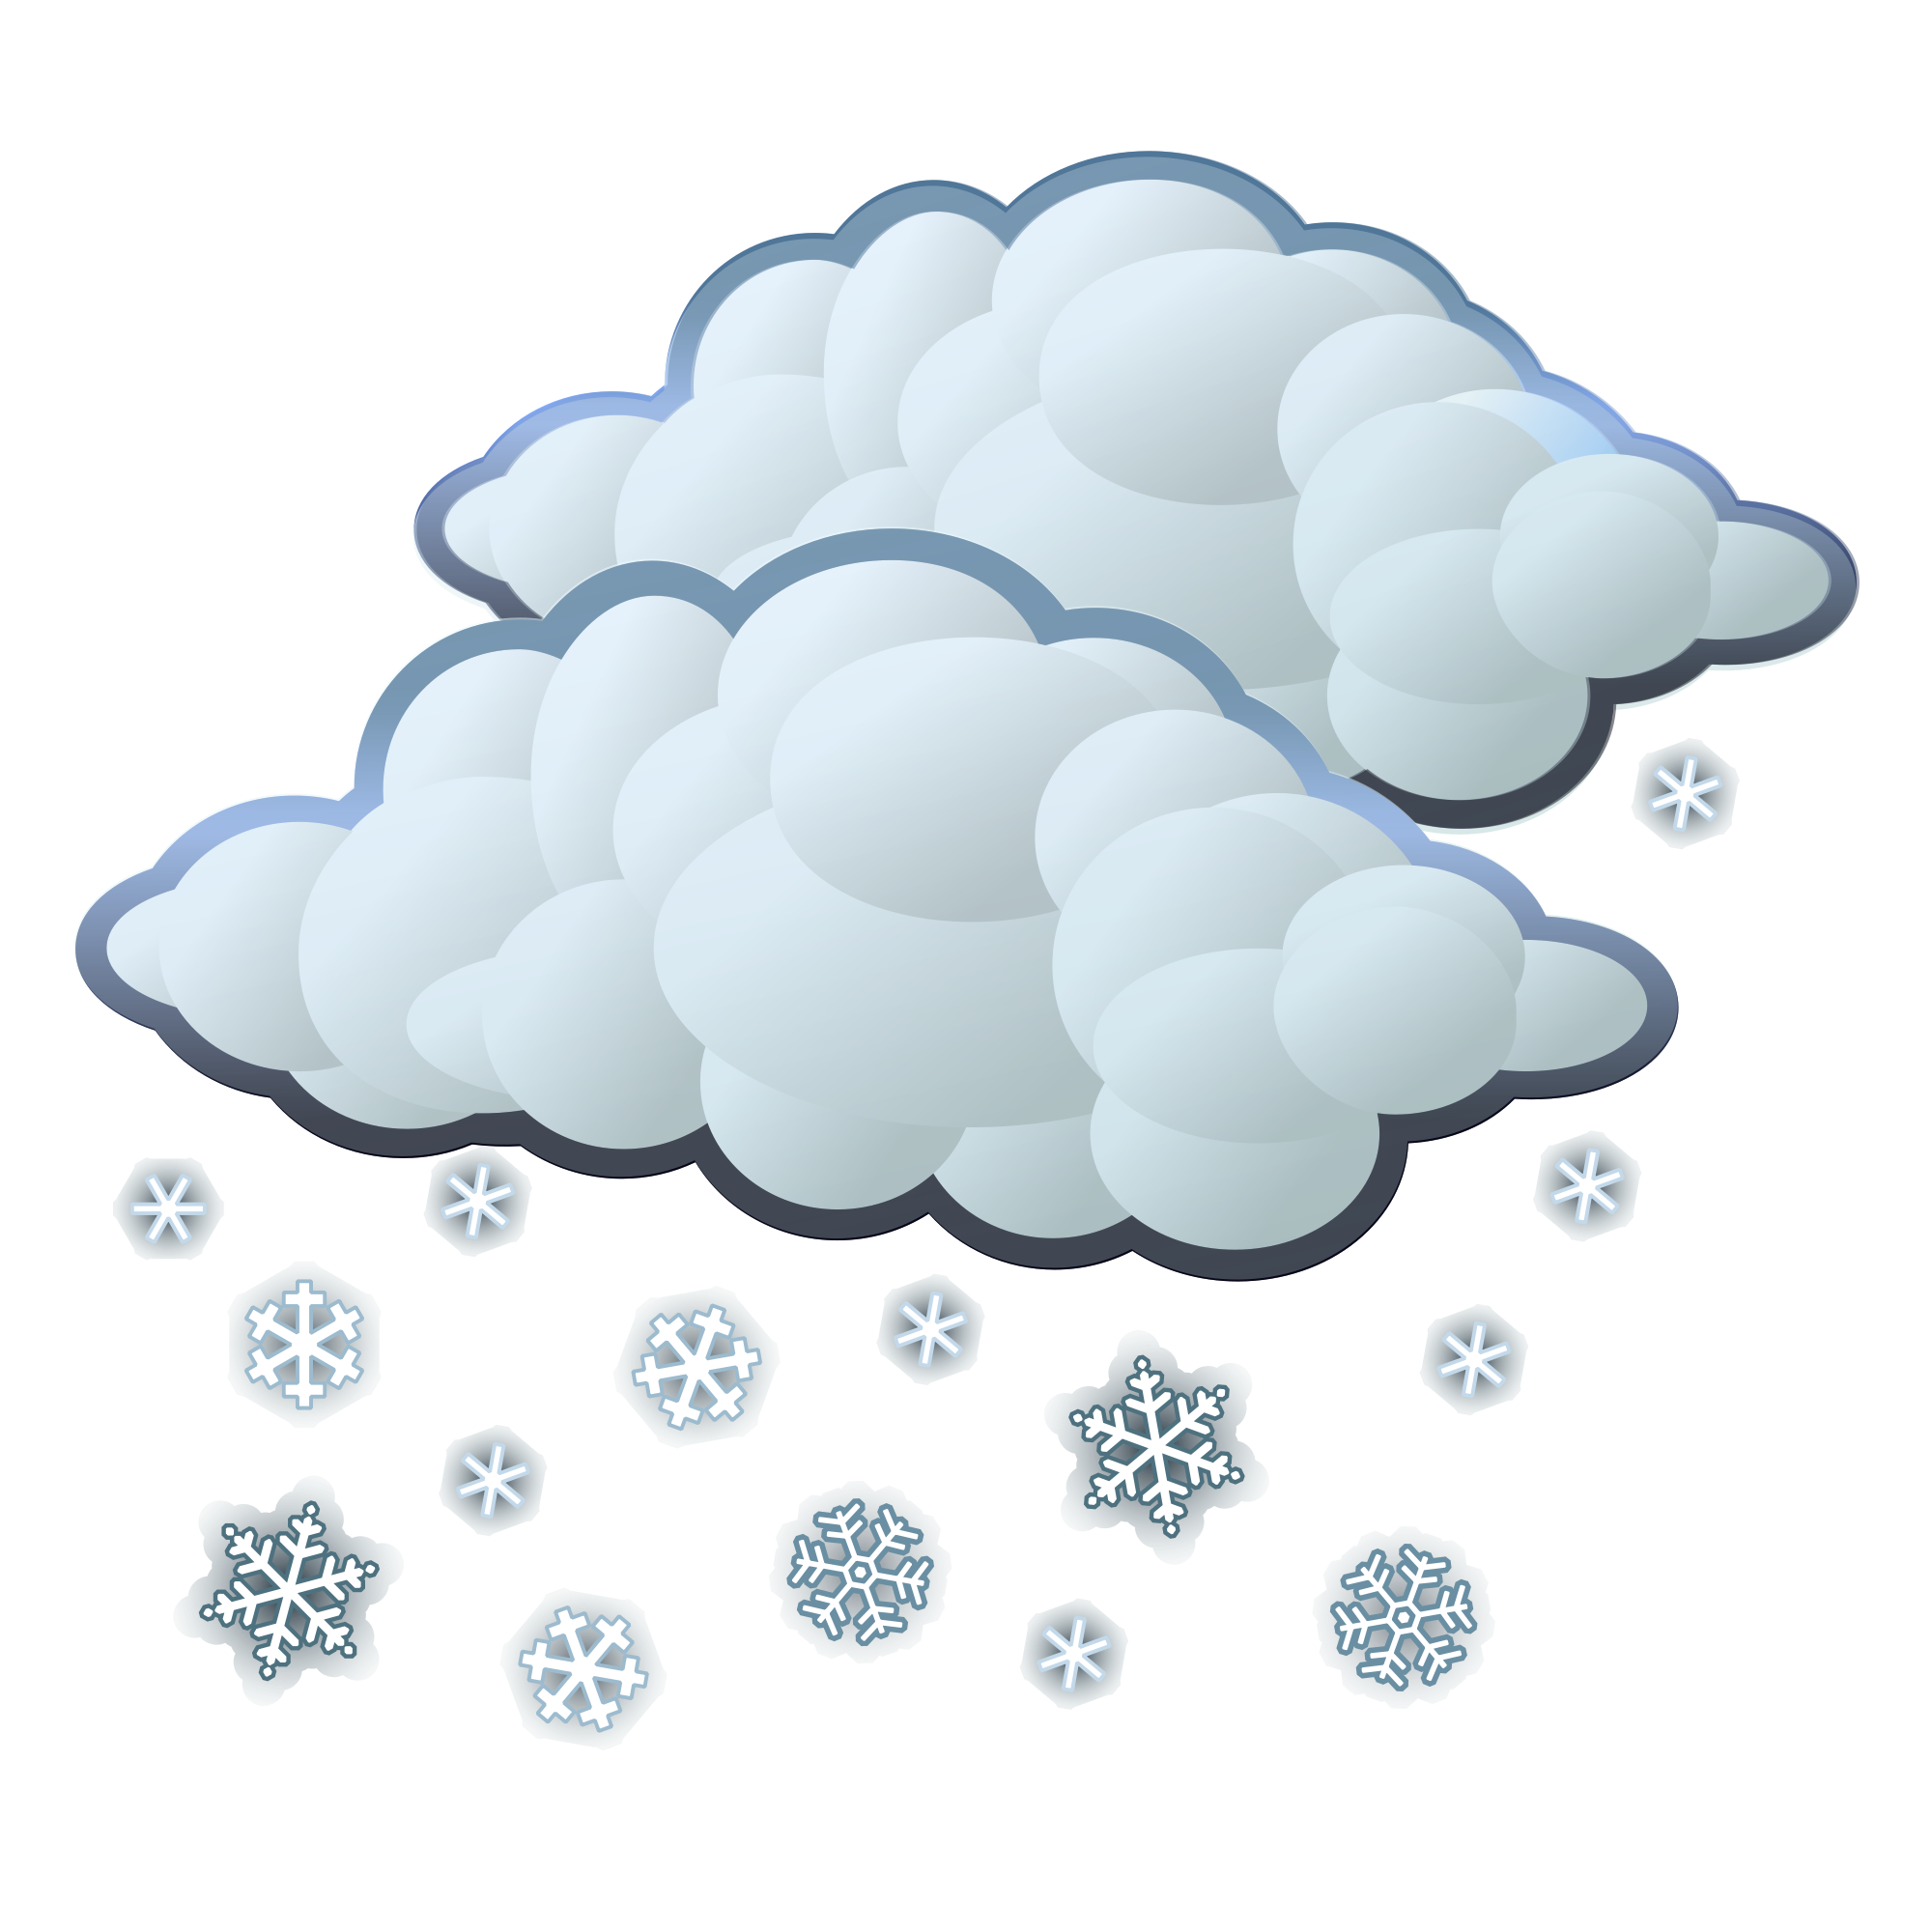 Snow svg. File wikimedia commons open